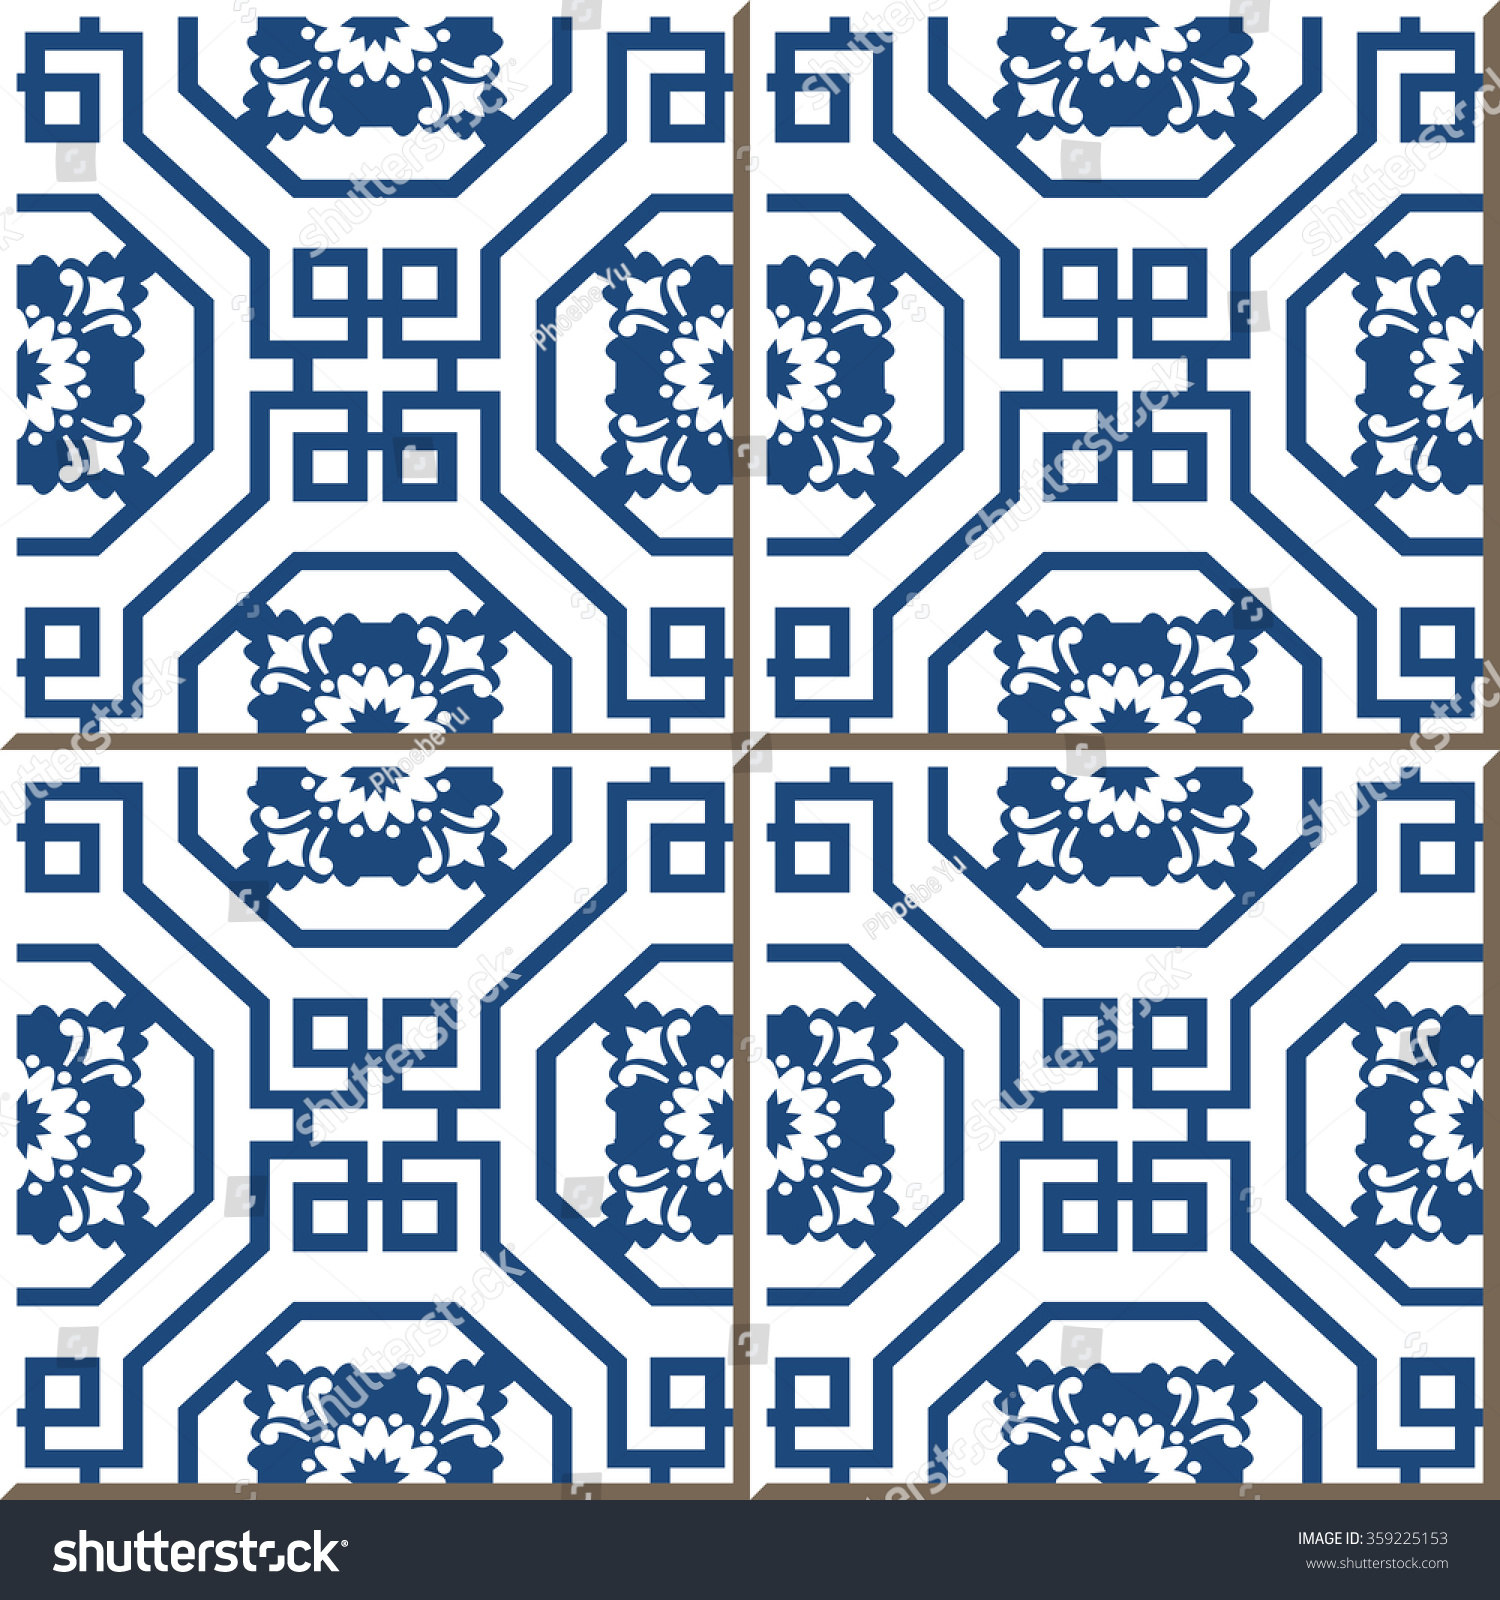 Vintage Seamless Wall Tiles Chinese Blue Stock Vector (Royalty Free ...